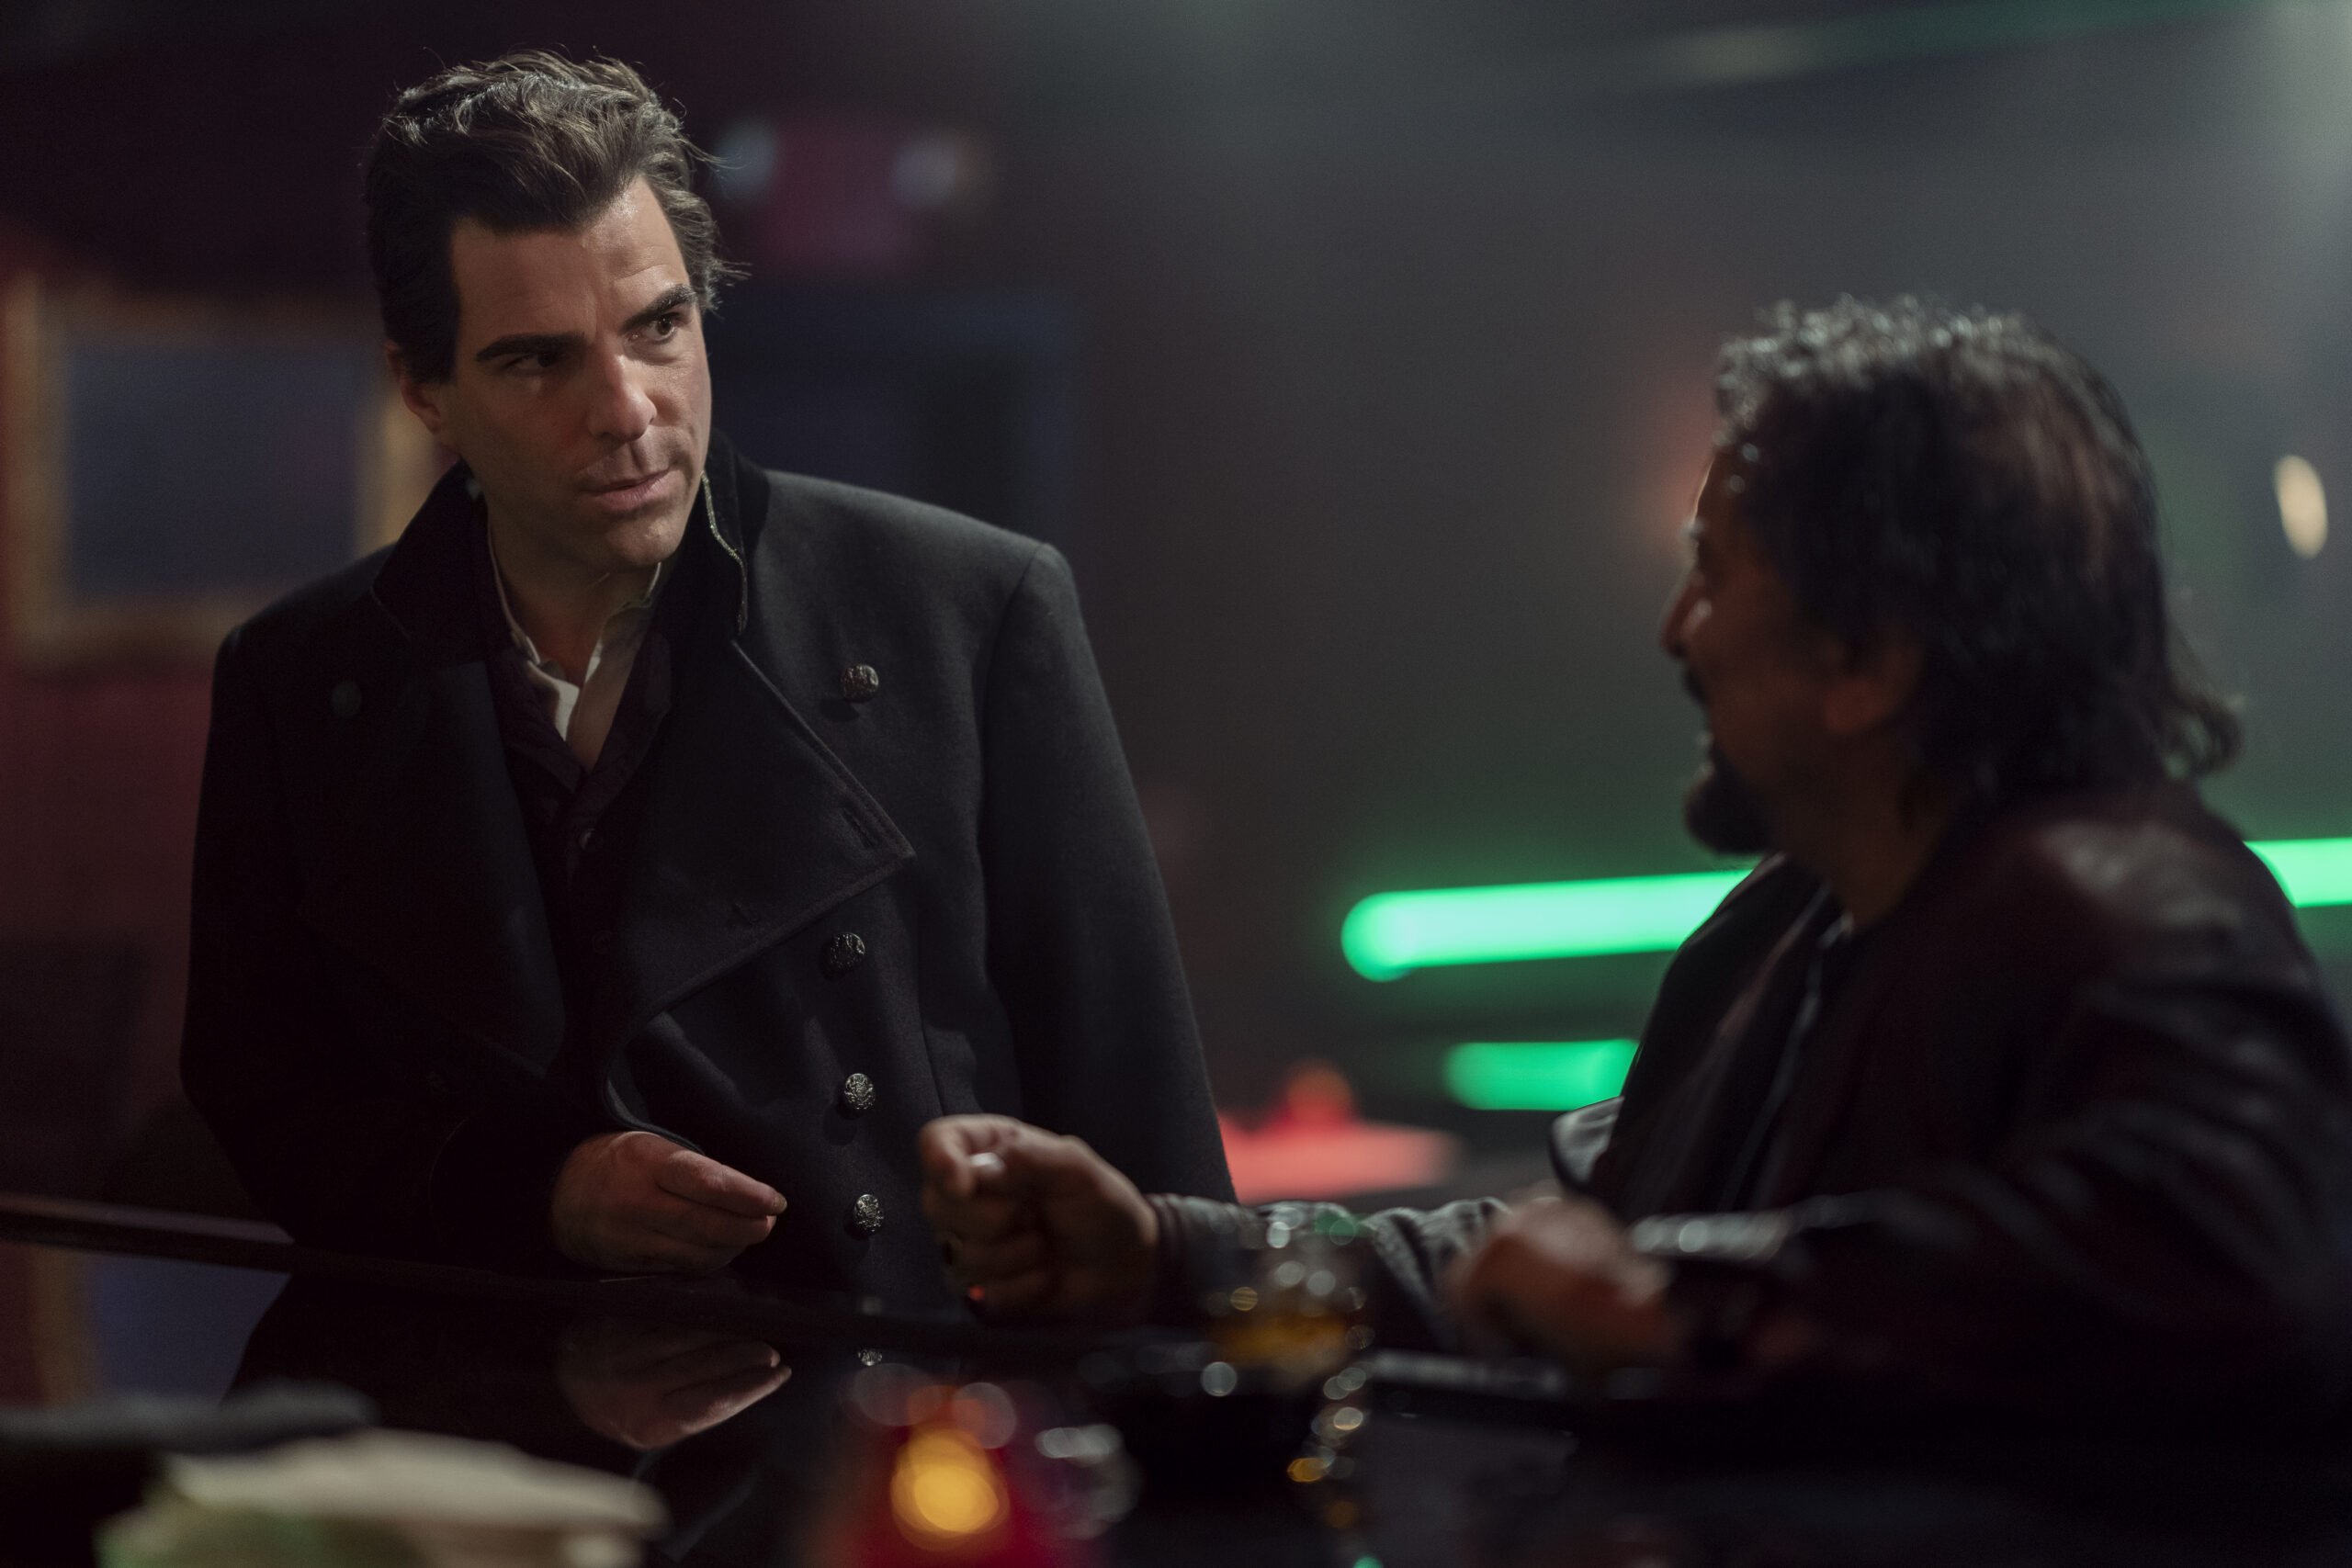 'NOS4A2' SERIES 2 – PREMIERE DATE & FIRST LOOK